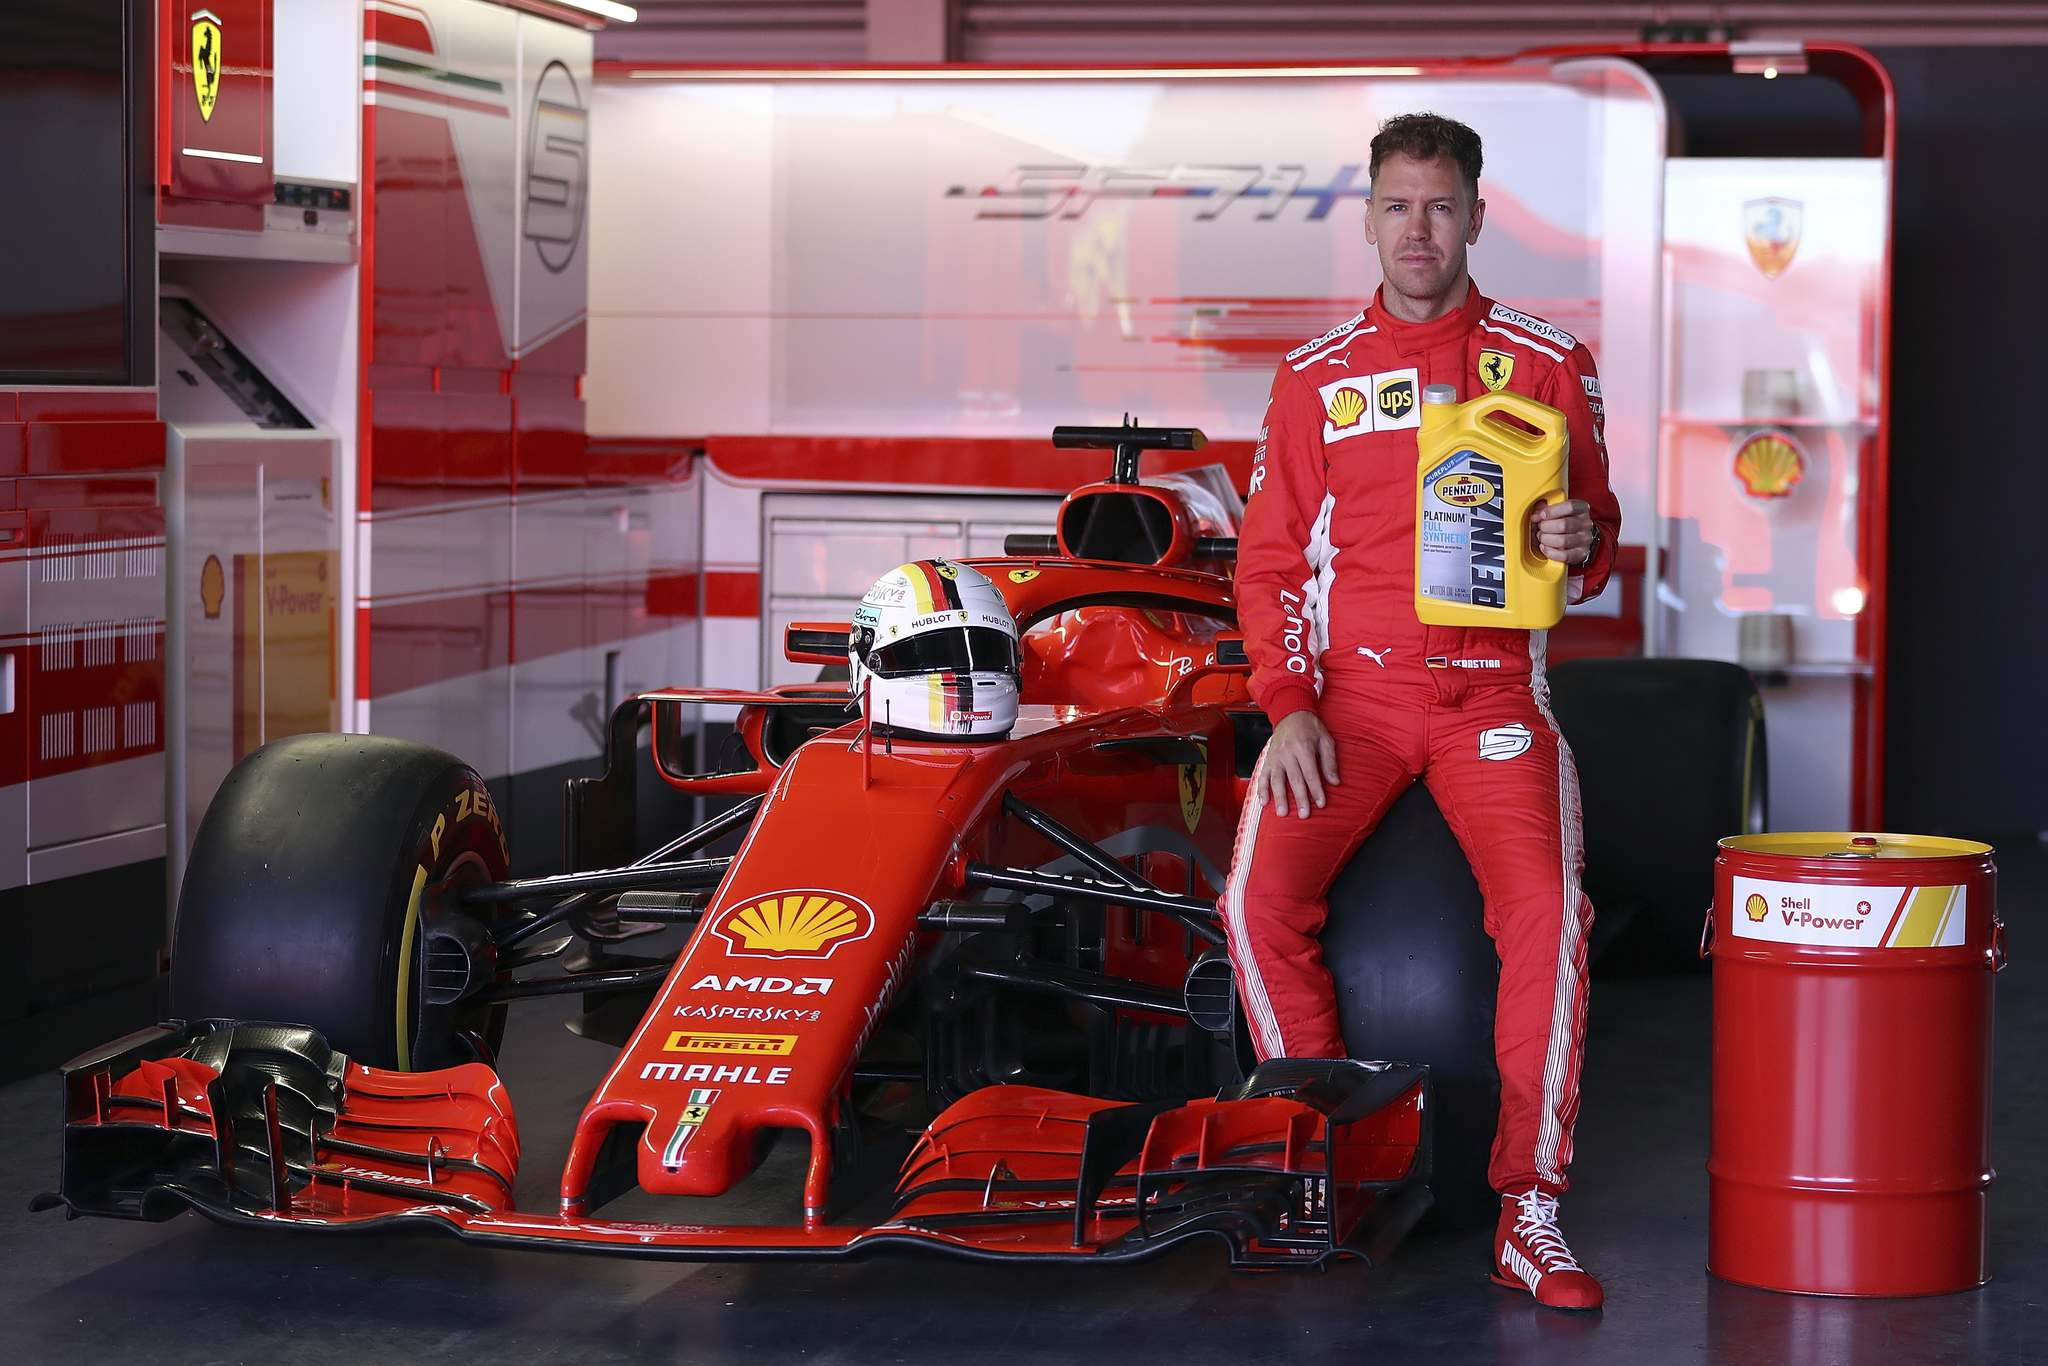 Bryn Lennon / Getty Images filesSebastian Vettel won this year's Formula One Canadian Grand Prix driving a Ferrari running synthetic engine oil with Shell's Pennzoil PurePlus technology.